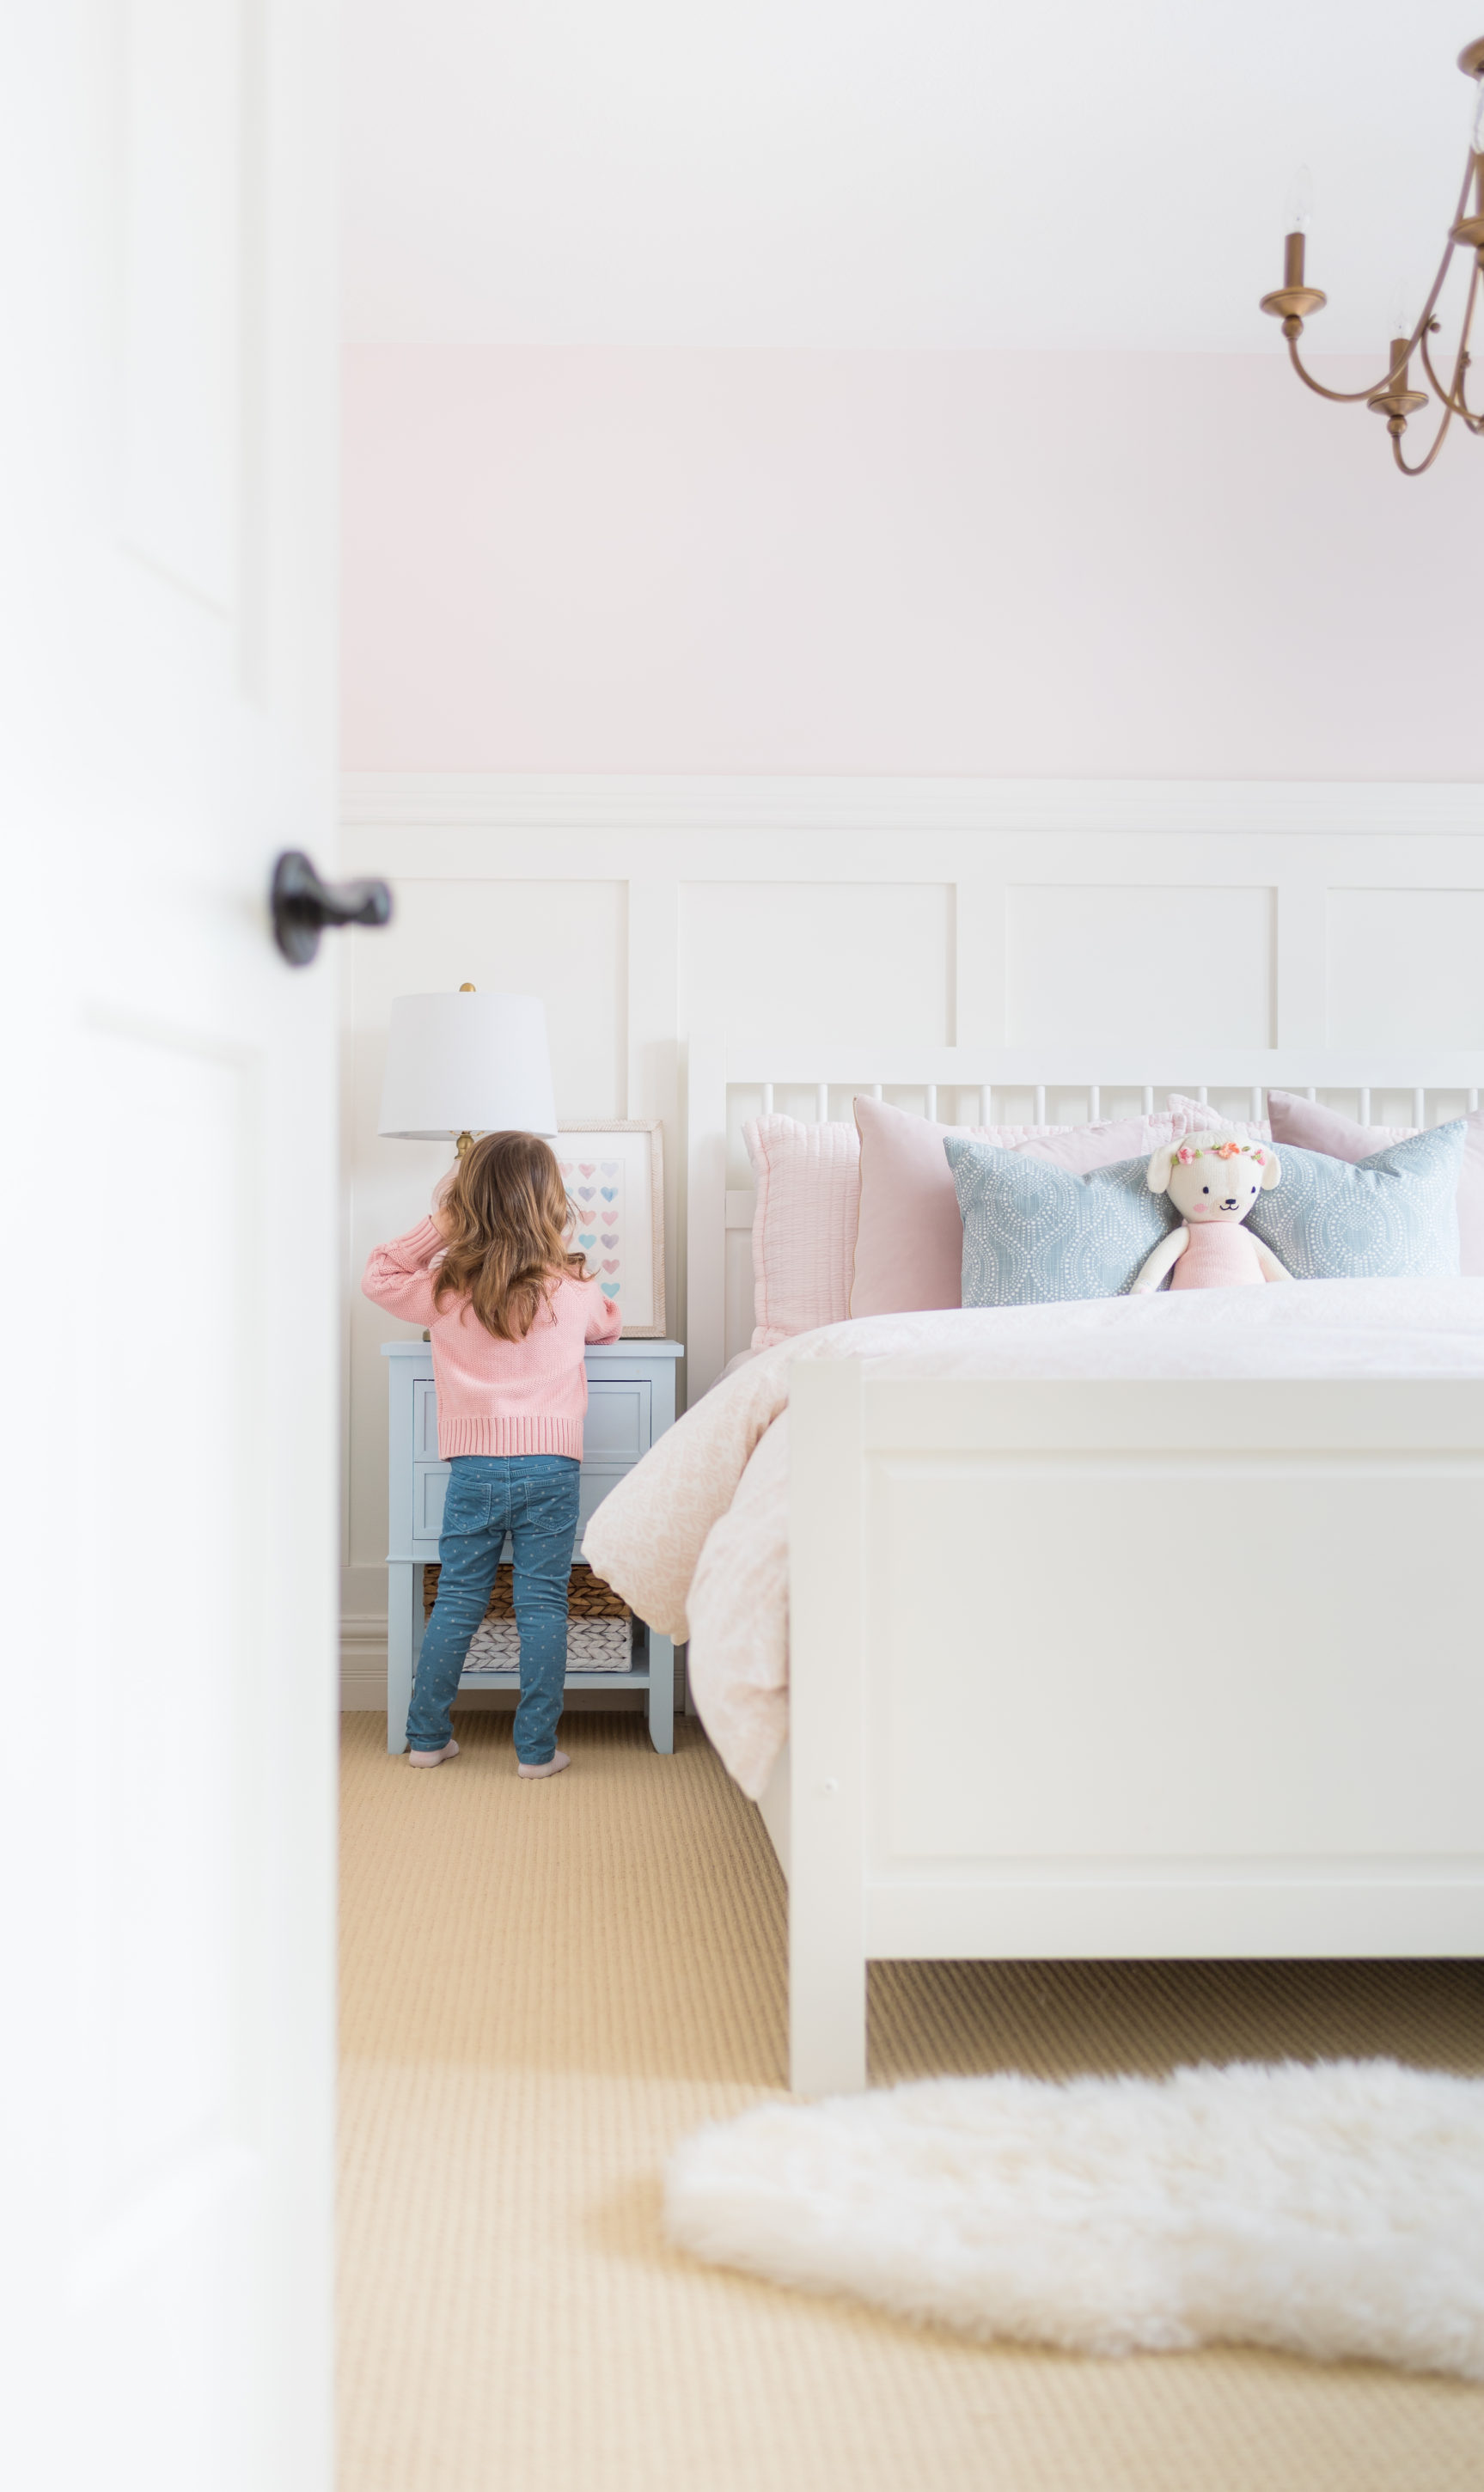 A rug is a great way to add colour, pattern, and personality to your little one's nursery or bedroom. Use our guide to ensure you're choosing the best rug for your space and lifestyle.